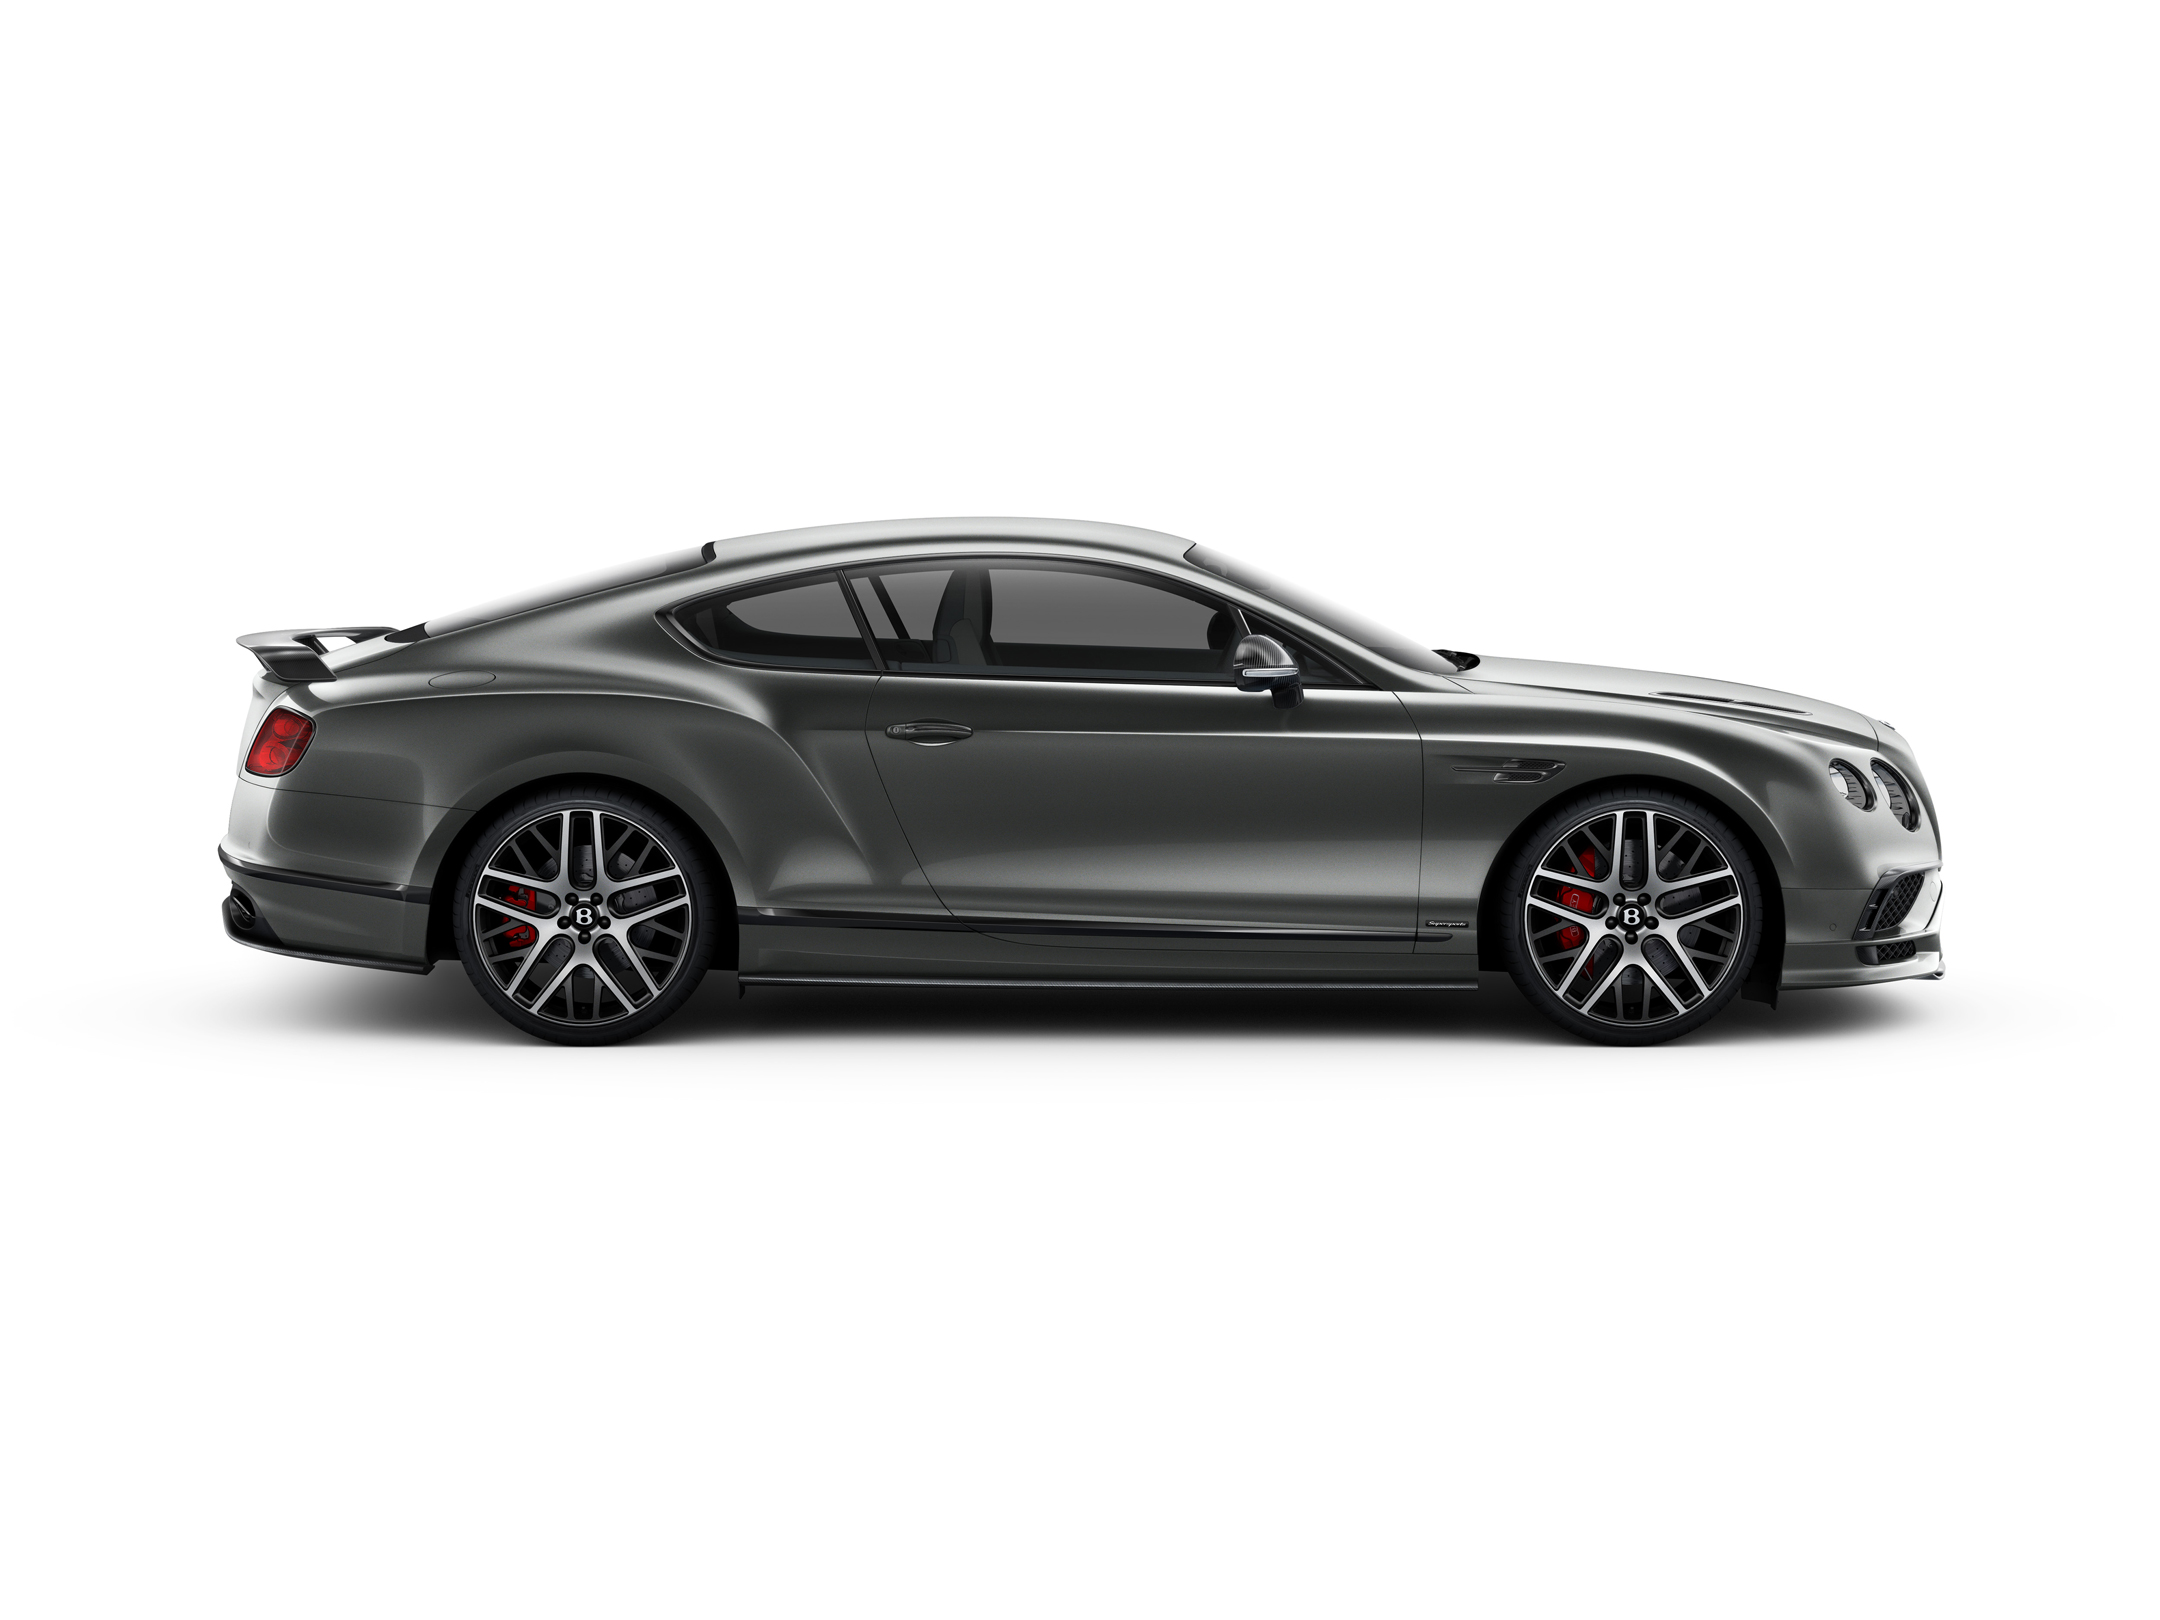 Continental Supersports - 2017 - profil / side-face